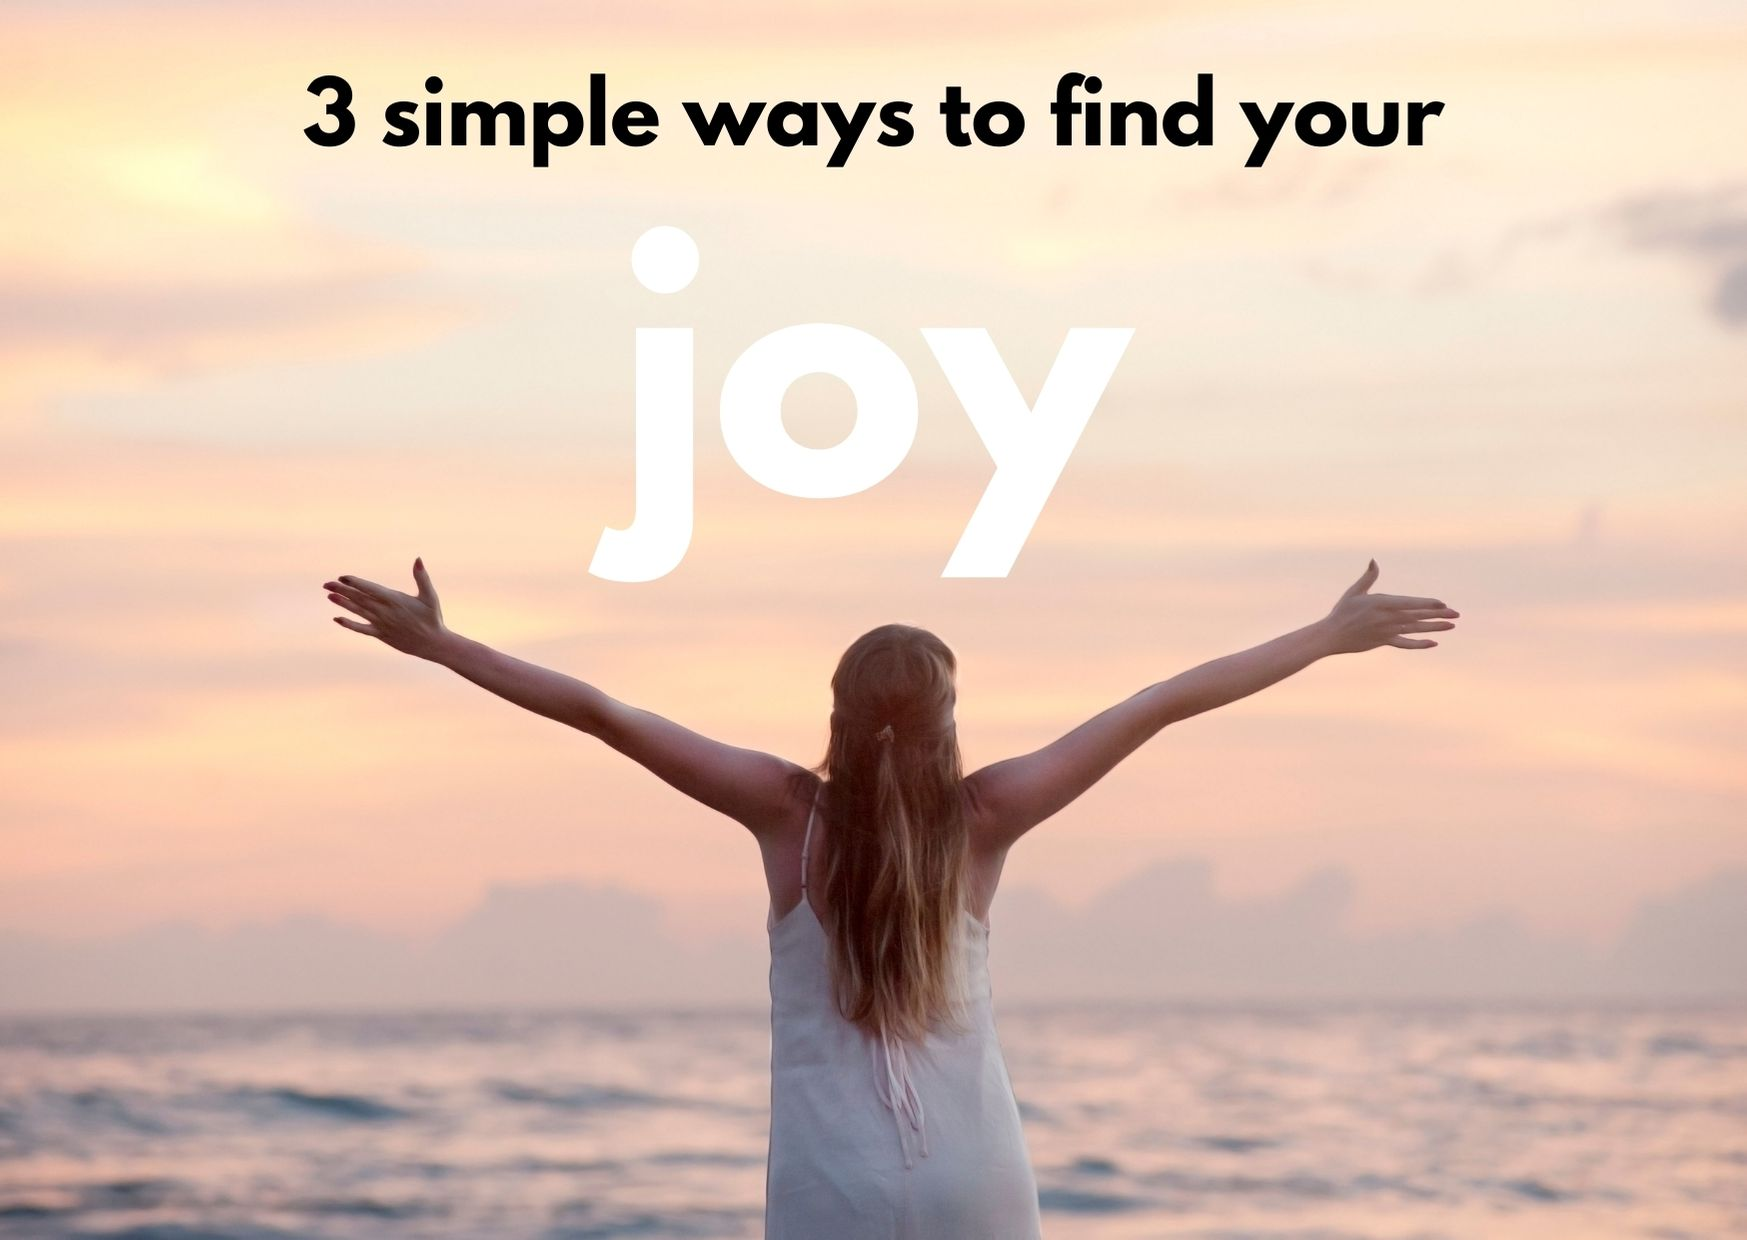 A woman with her arms wide open by the sea and the title 3 simple ways to find your joy